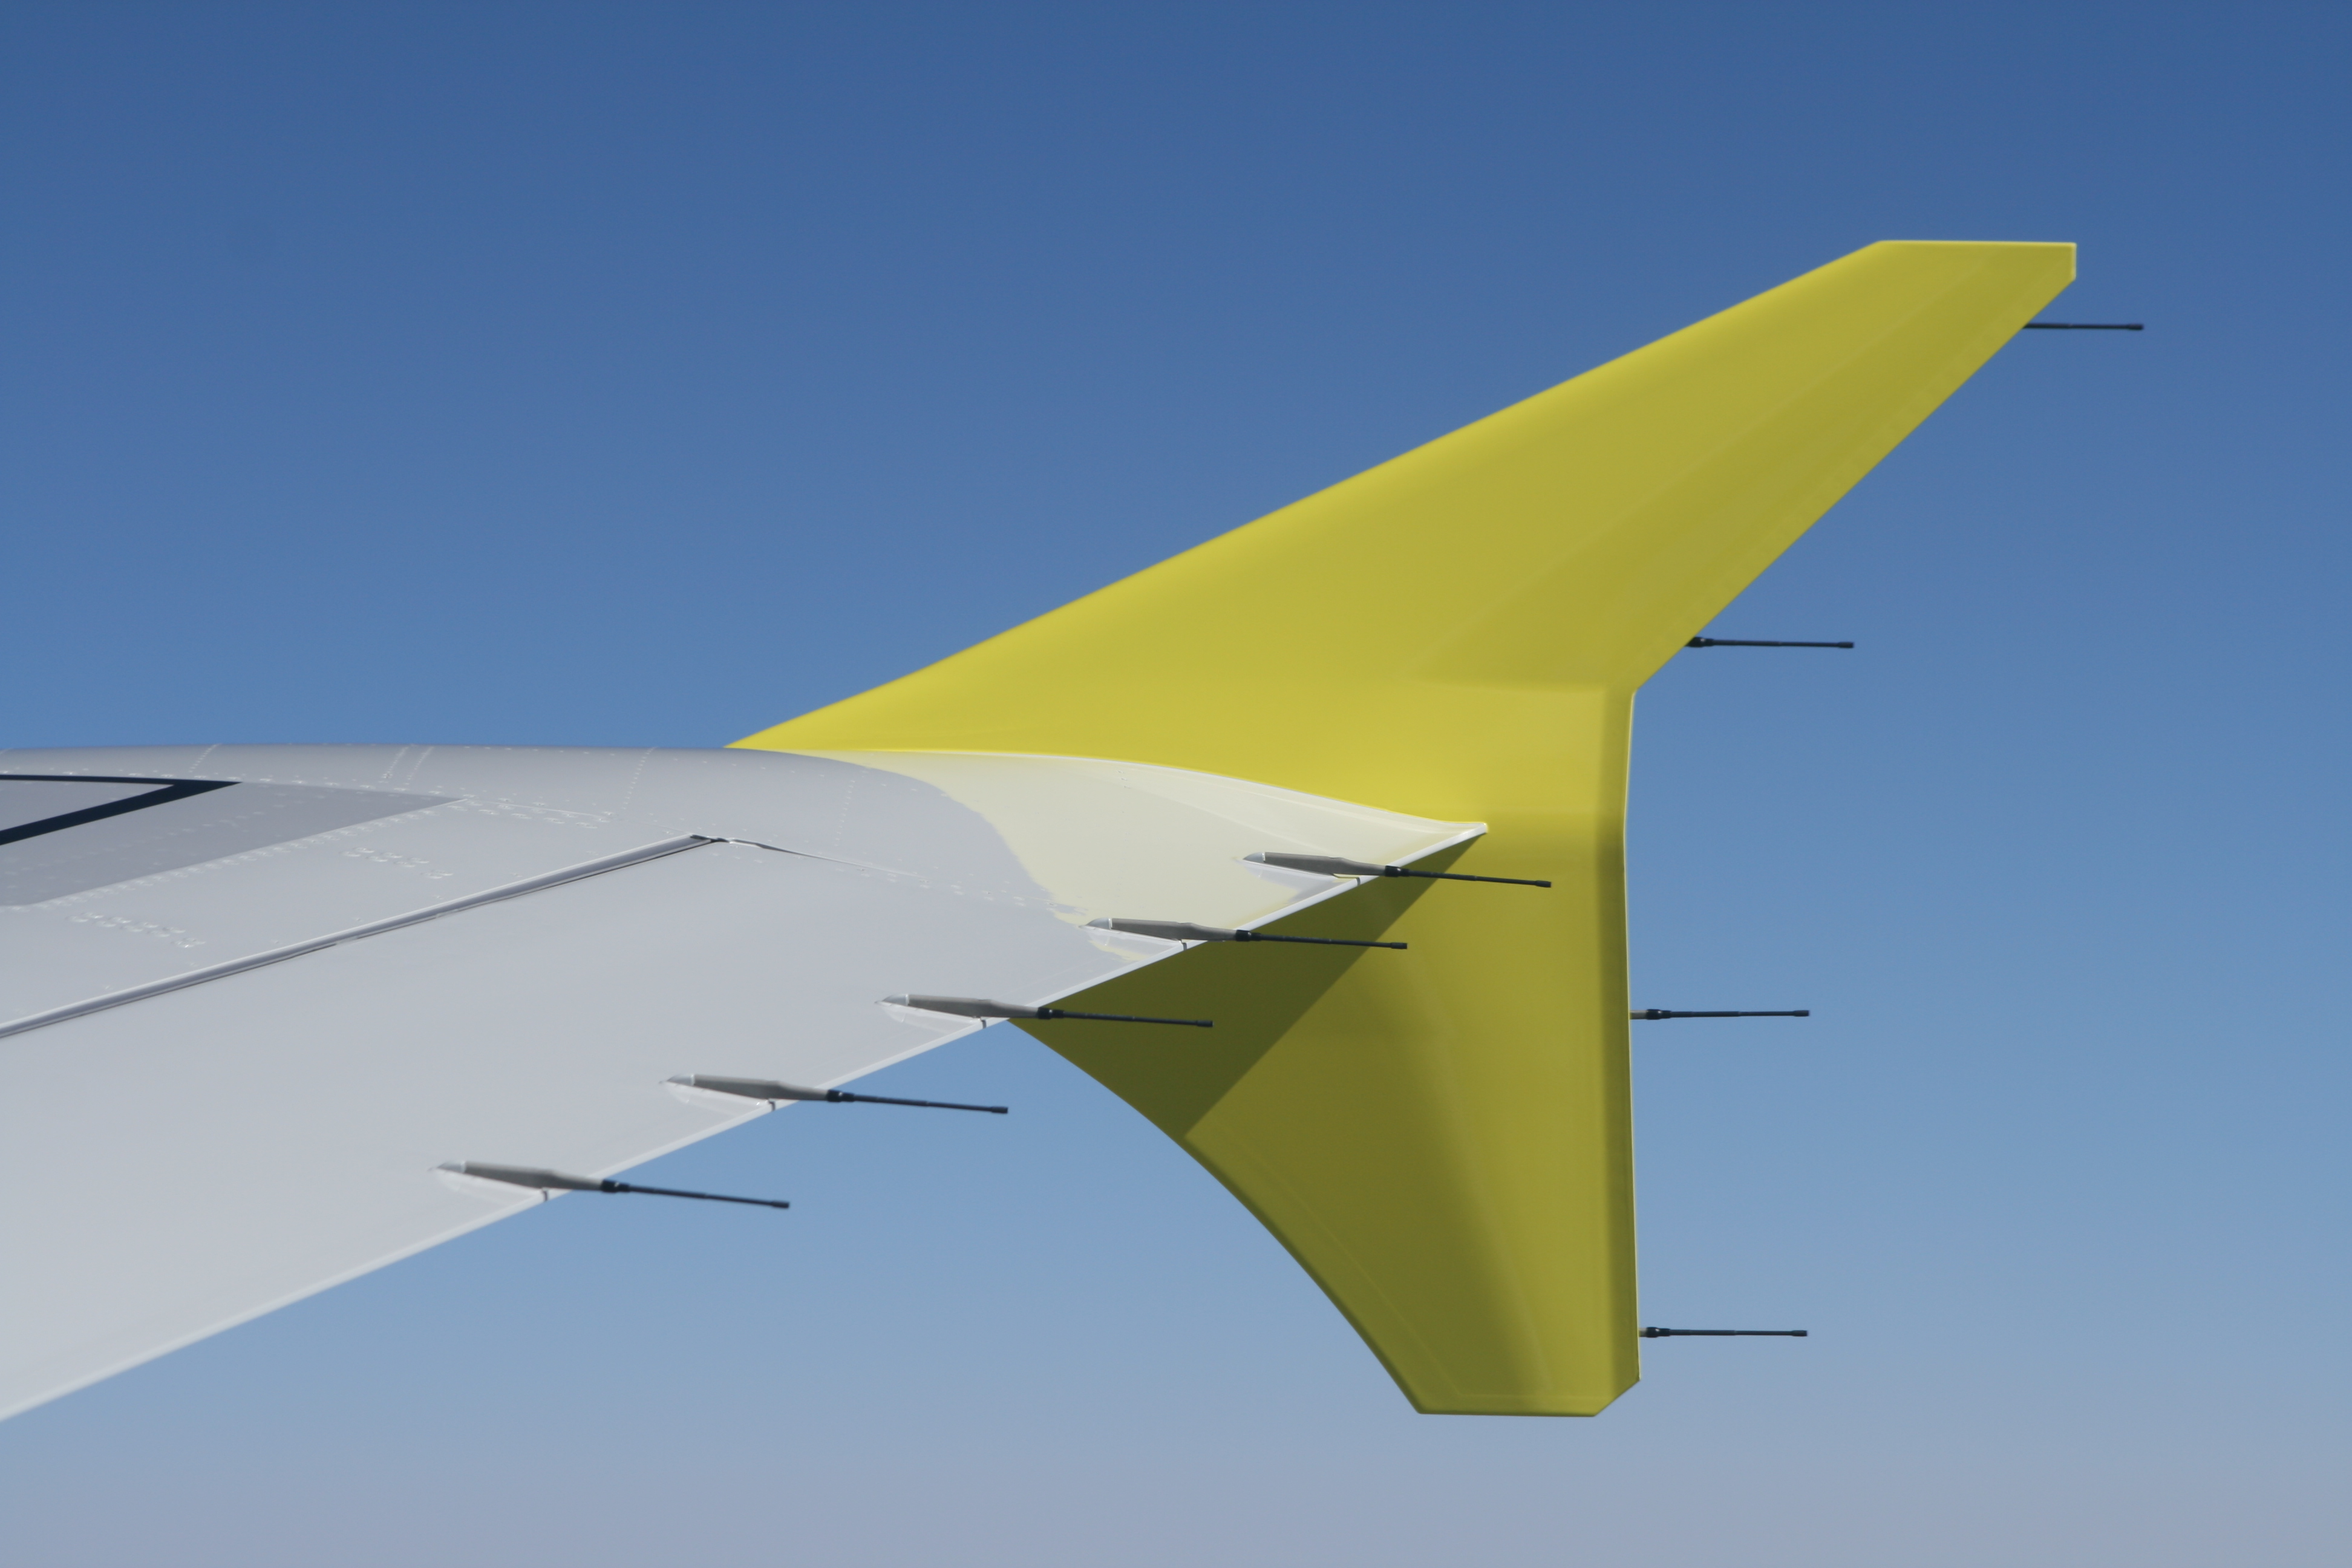 aerodynamic analysis on winglets Commercial aircraft performance improvement using winglets  are shorter than or equivalent to a winglet possessing similar aerodynamic benefits wingtip fences were the  aerodynamic analysis the results obtained were examined and analyzed 4 result and discussion.